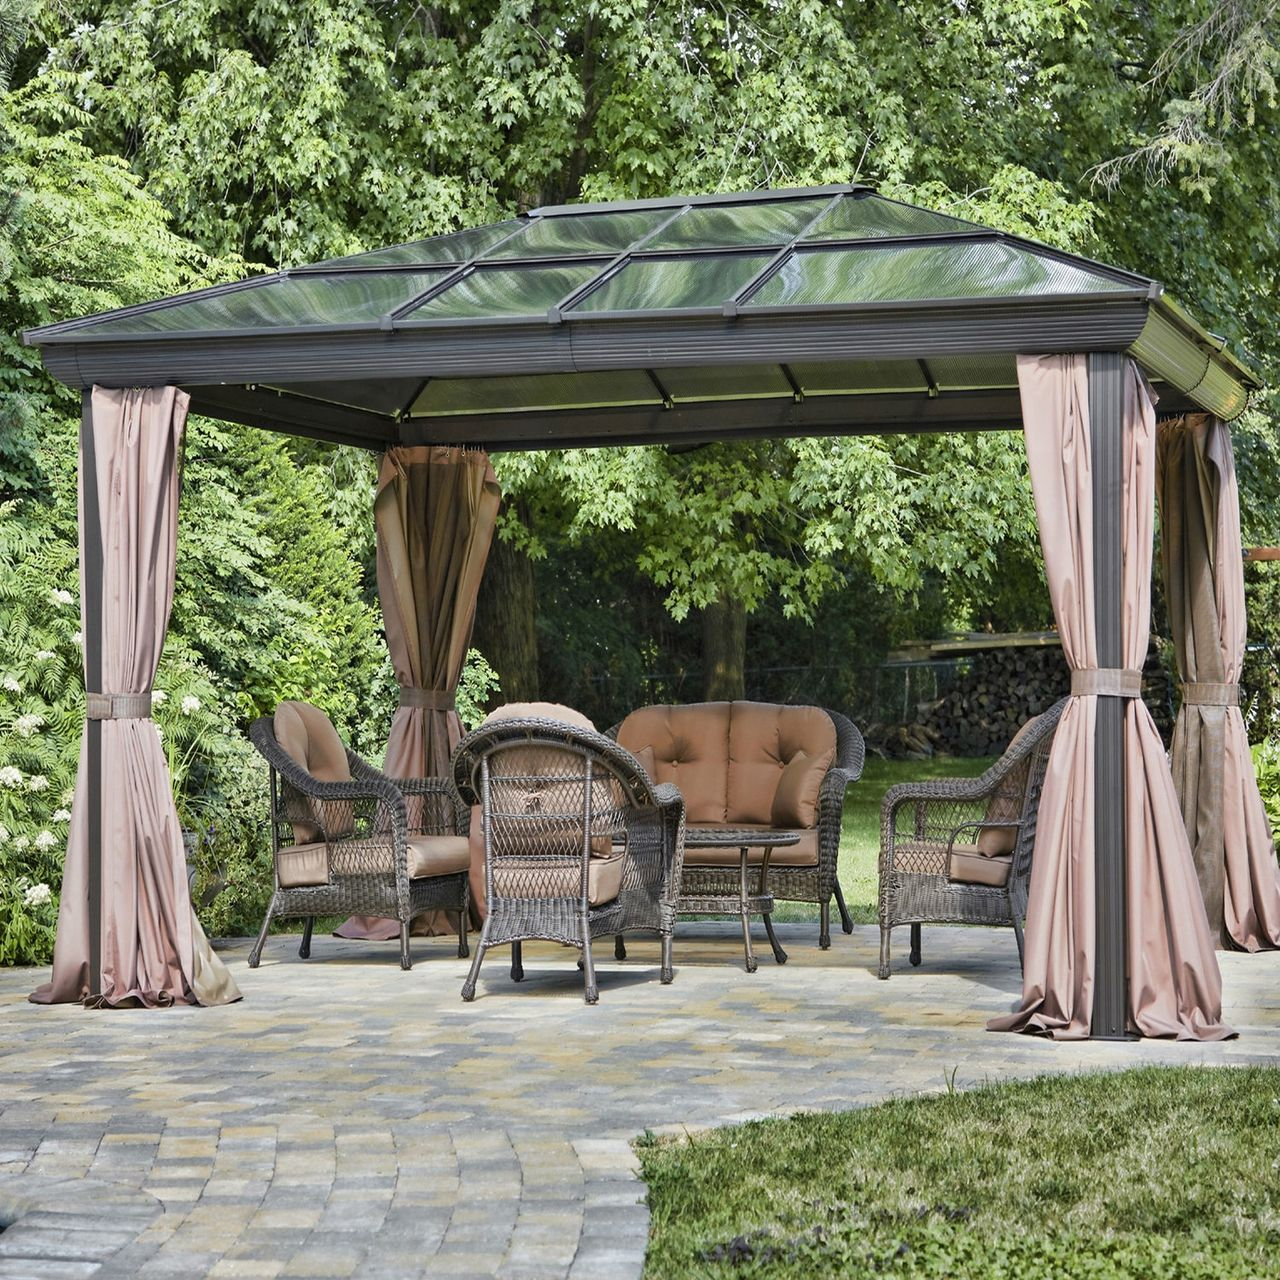 12 X 16 Ft Year Round Use Gazebo Uv Blocking Panels Canopy Curtains Patio Gazebo Canopy Outdoor Hardtop Gazebo